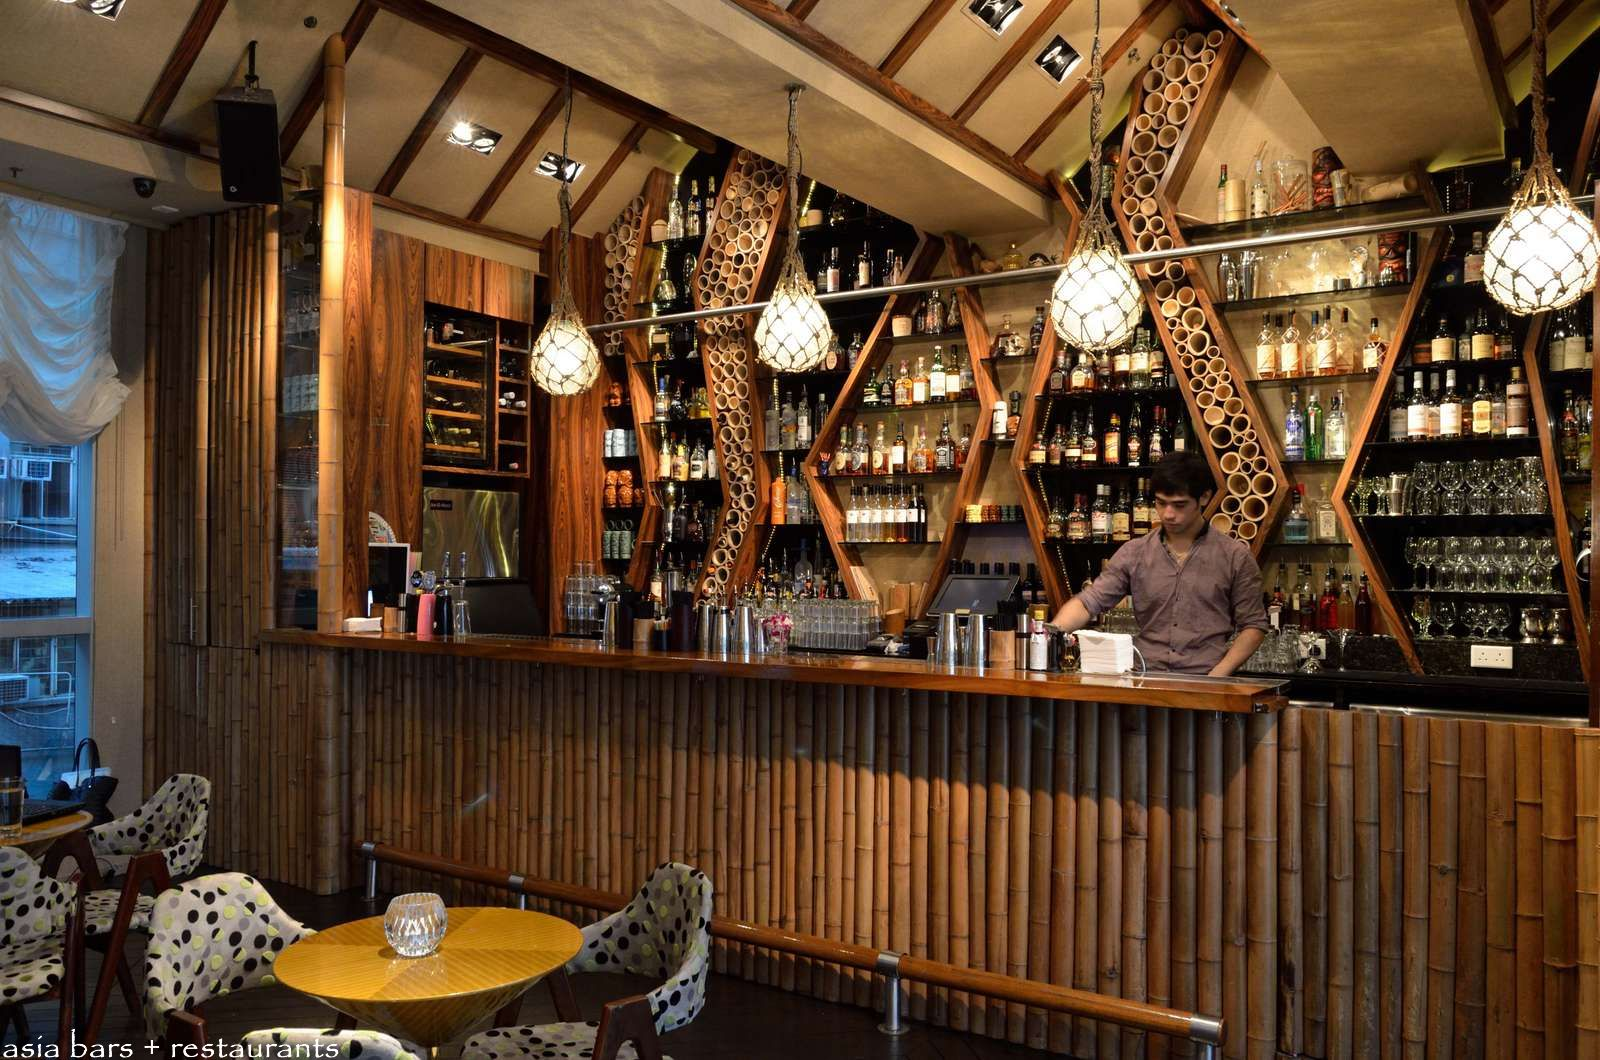 Honi honi tiki cocktail lounge in hong kong asia bars restaurants - Bamboo bar design ideas ...